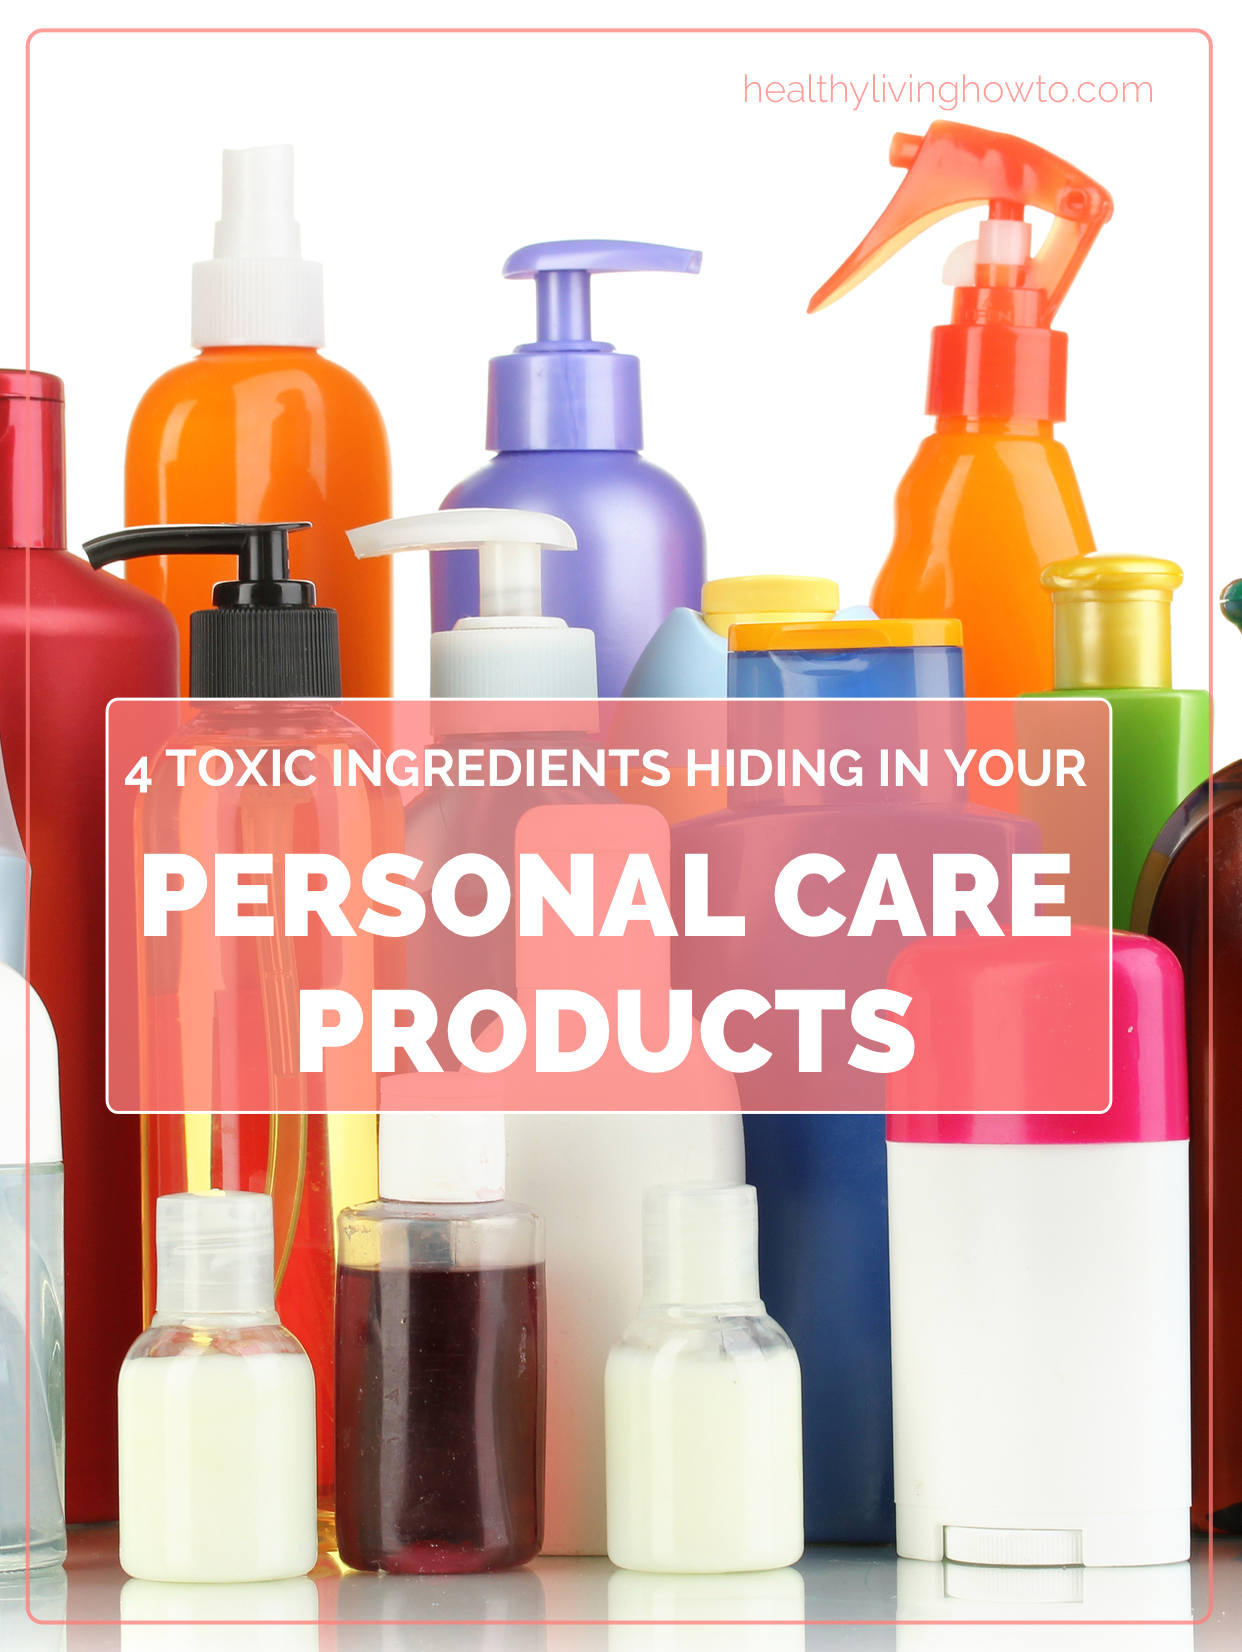 personal care toxic ingredients hiding avoid toxins healthylivinghowto healthy cosmetics living below beauty